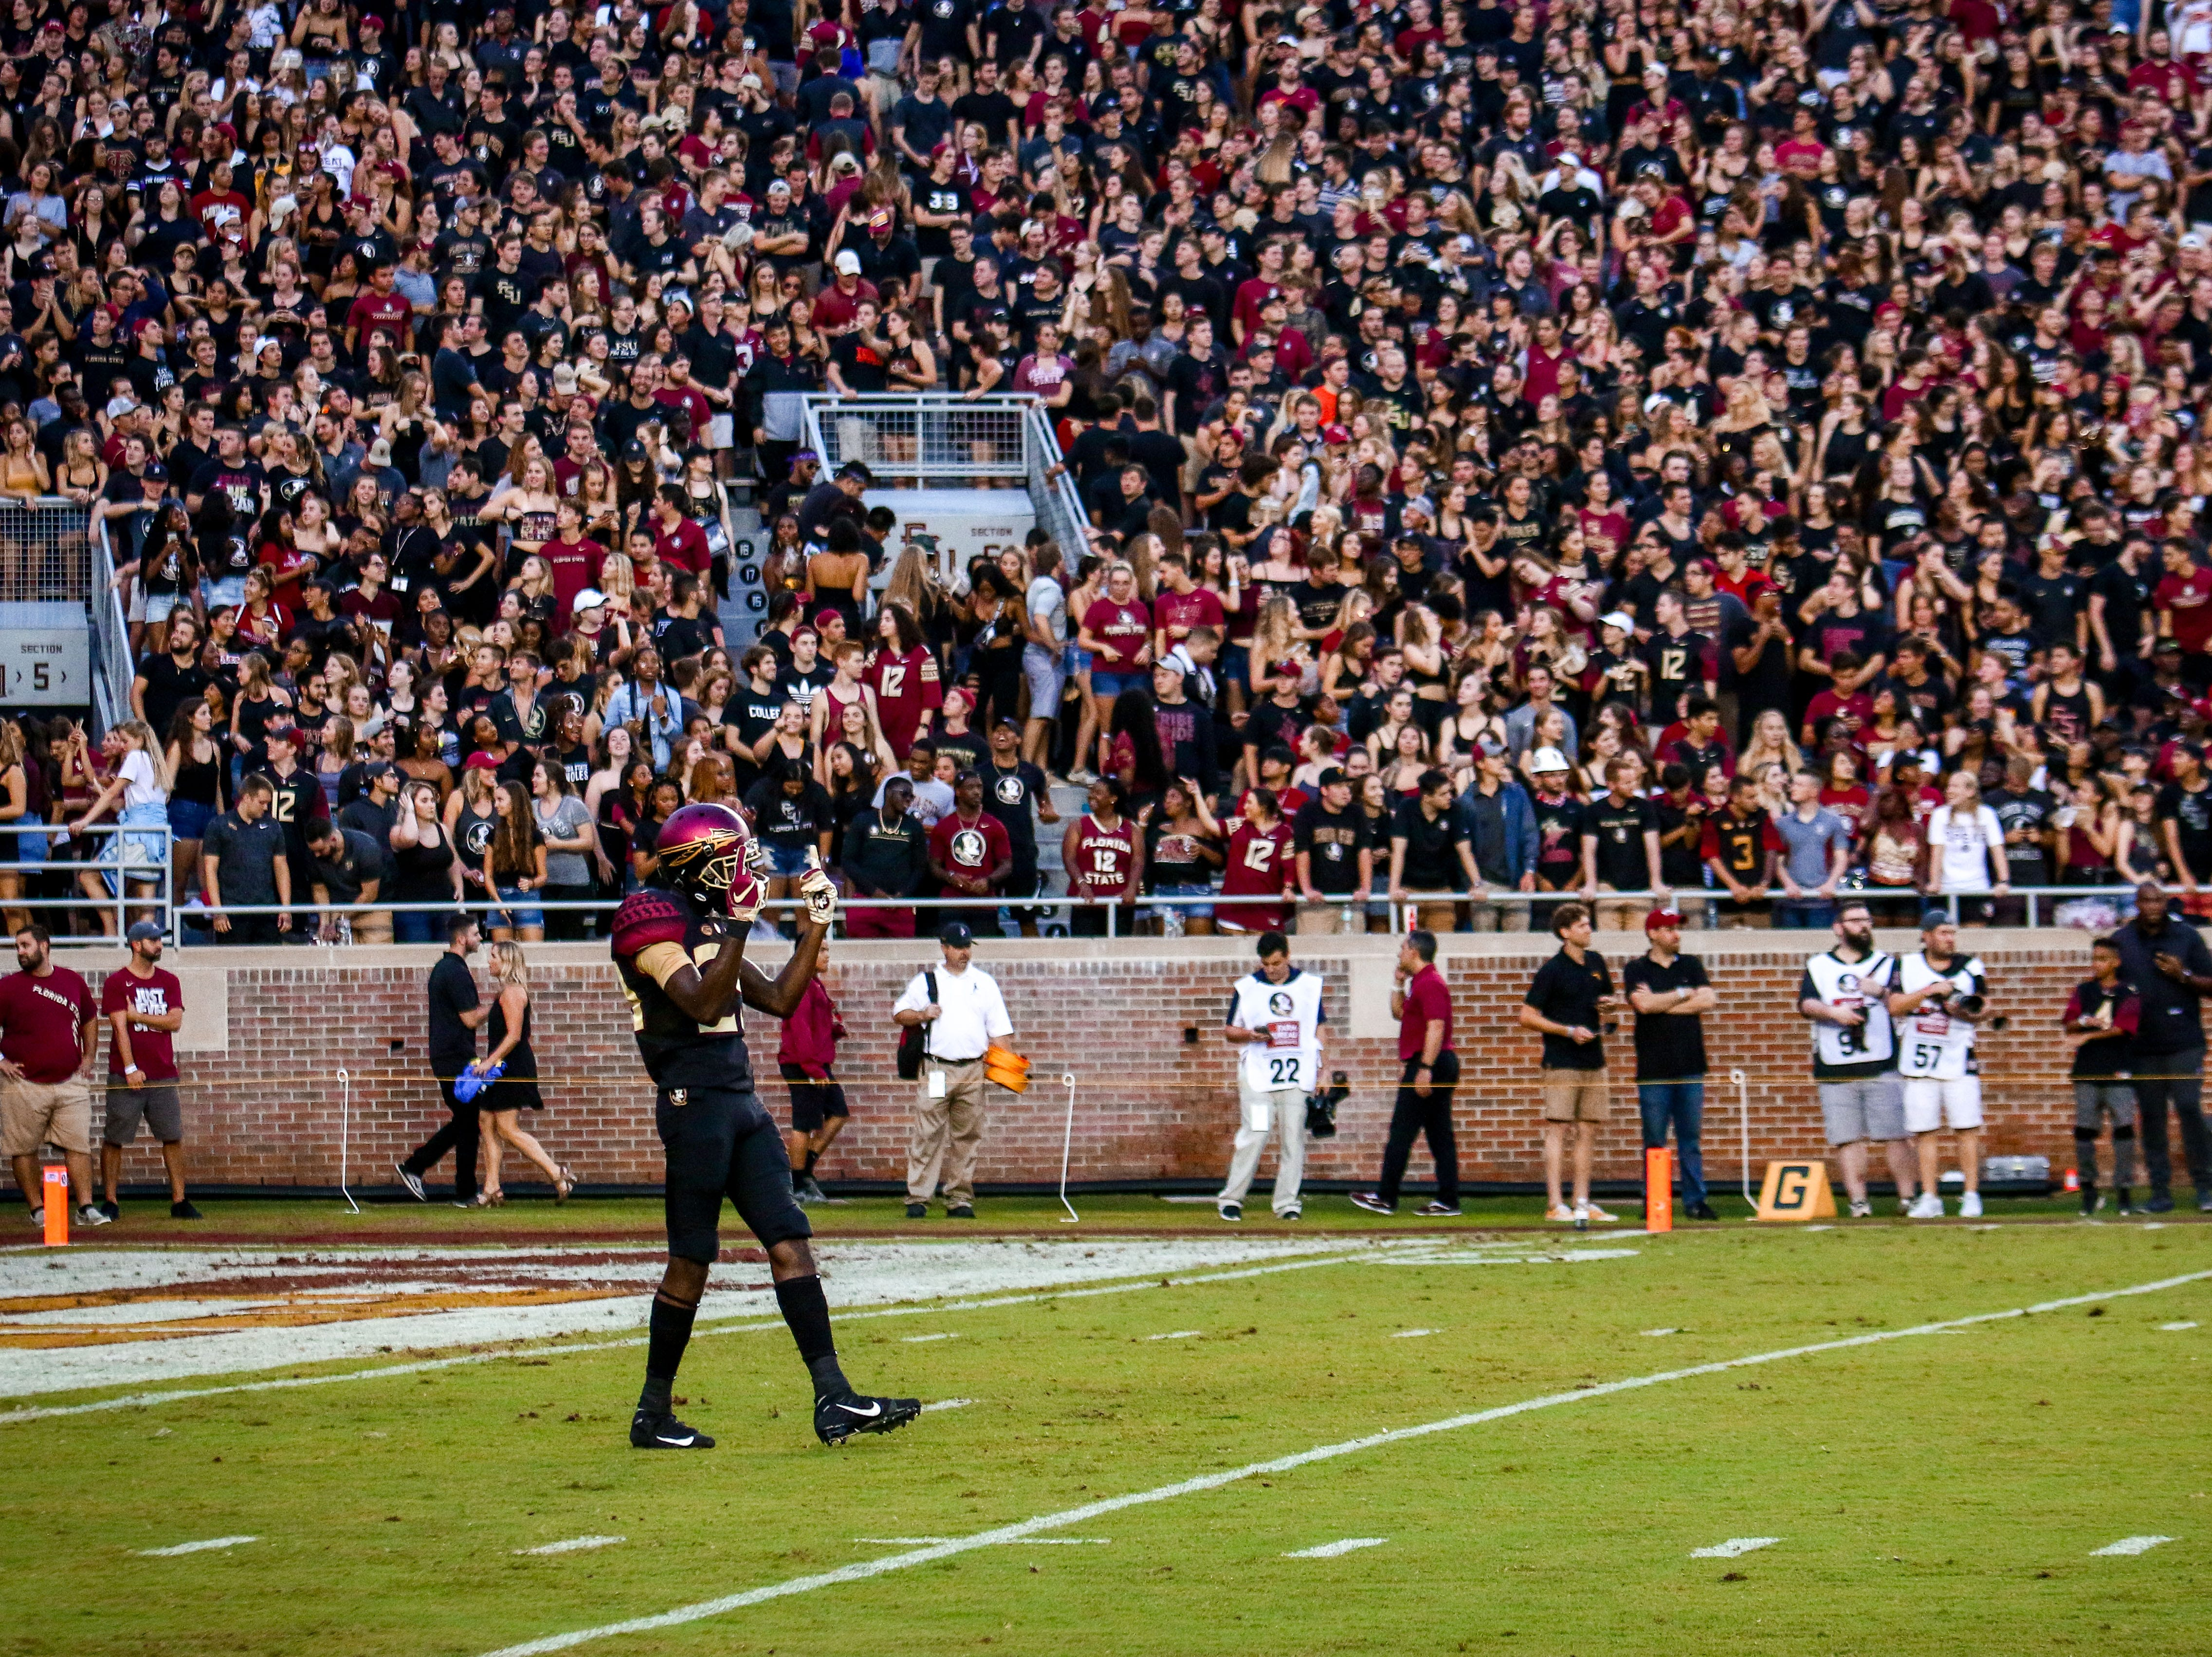 The atmosphere was electric inside of Doak Campbell stadium before kickoff. Many players such as D.J. Matthews (29) fed off the energy to get prepared for the game against #20 Virginia Tech on Monday, September 3rd.